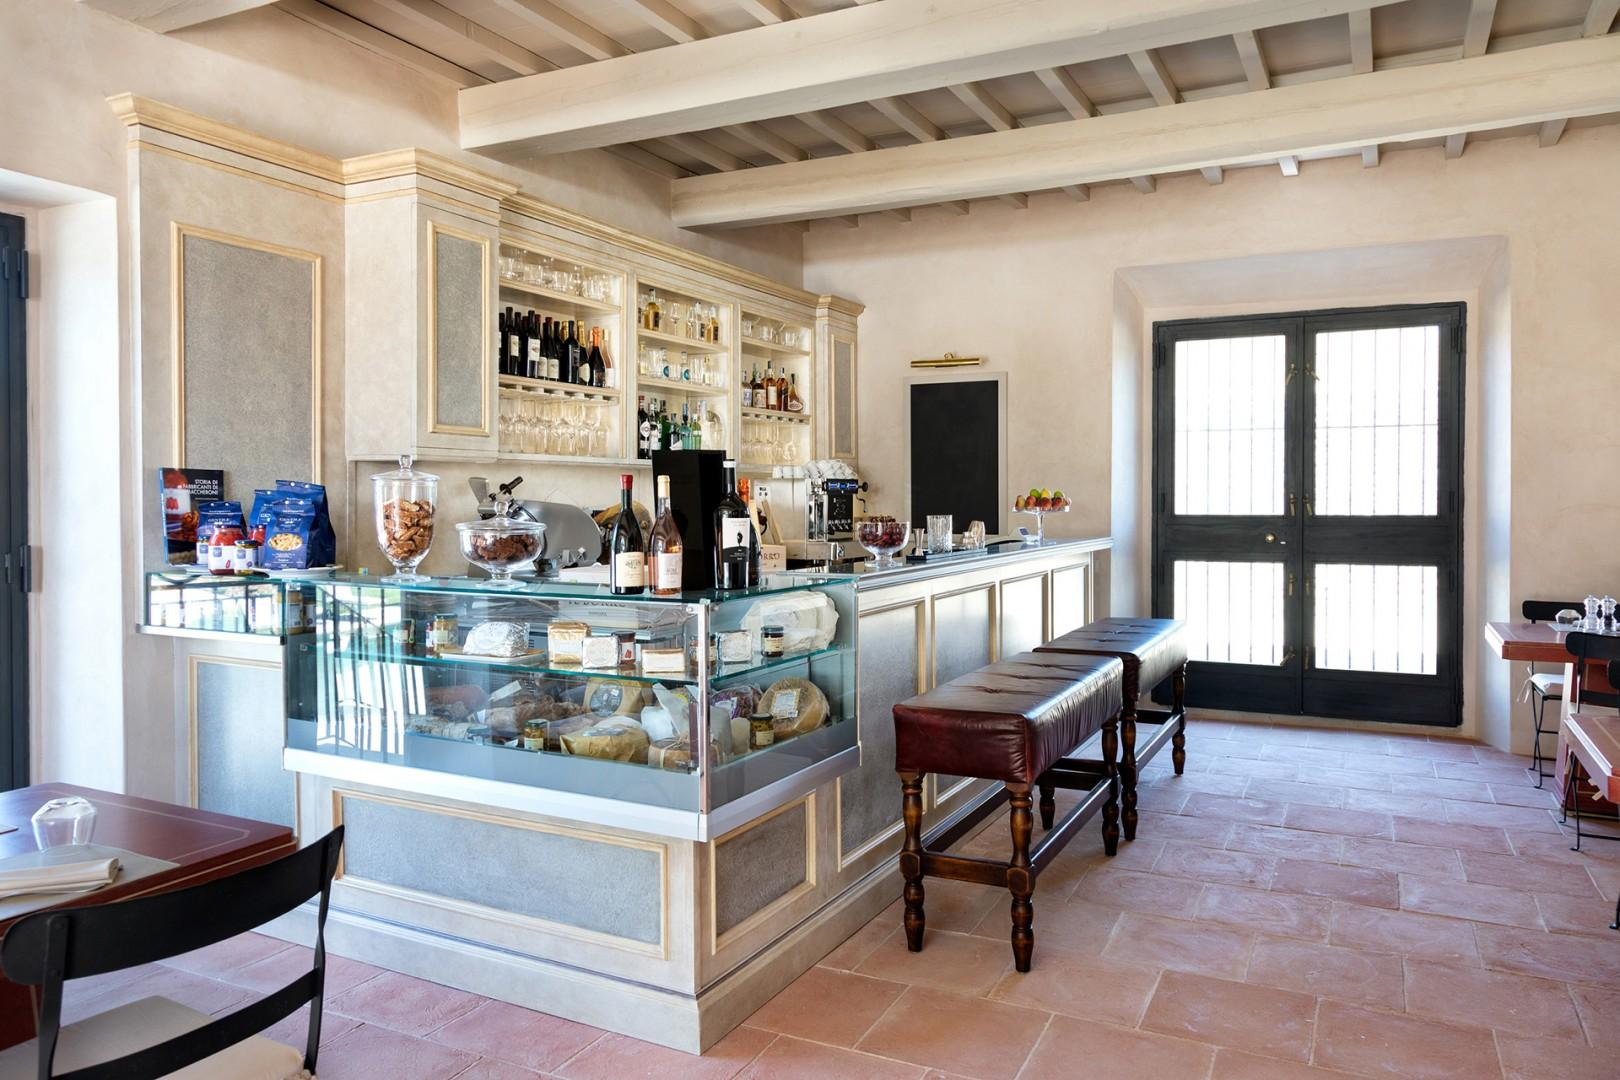 On-site bistro serves delicious Tuscan specialties. The shop offers local wine & products.